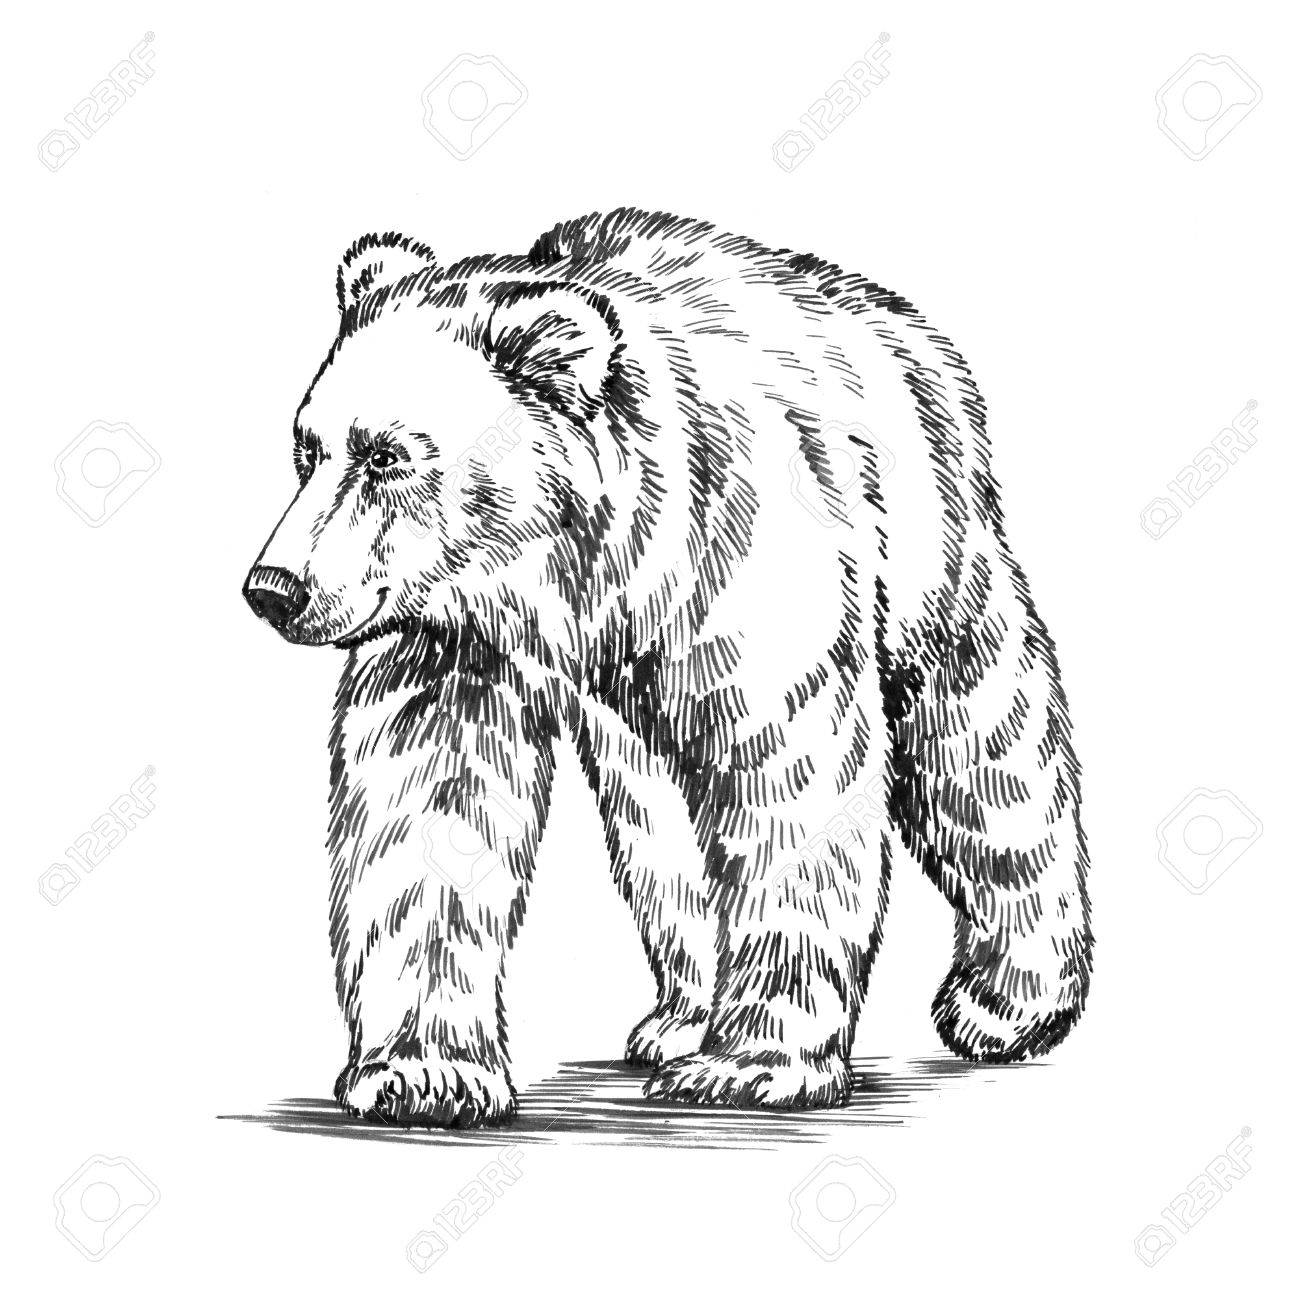 Grizzly Bear Line Drawing at GetDrawings.com | Free for personal use ...